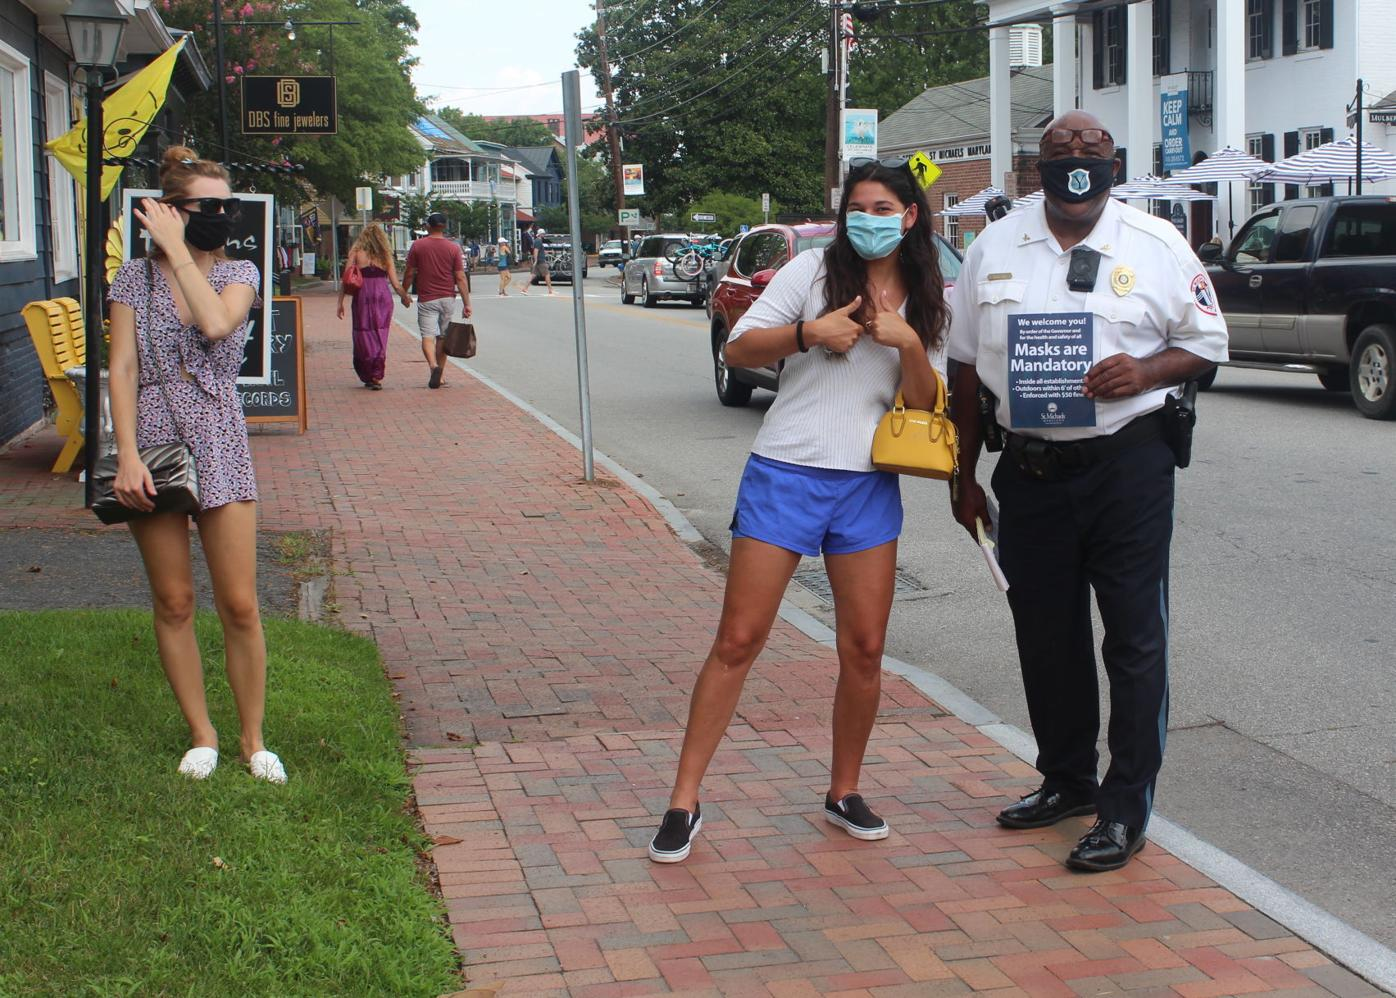 St. Michaels reminds public of mask policy